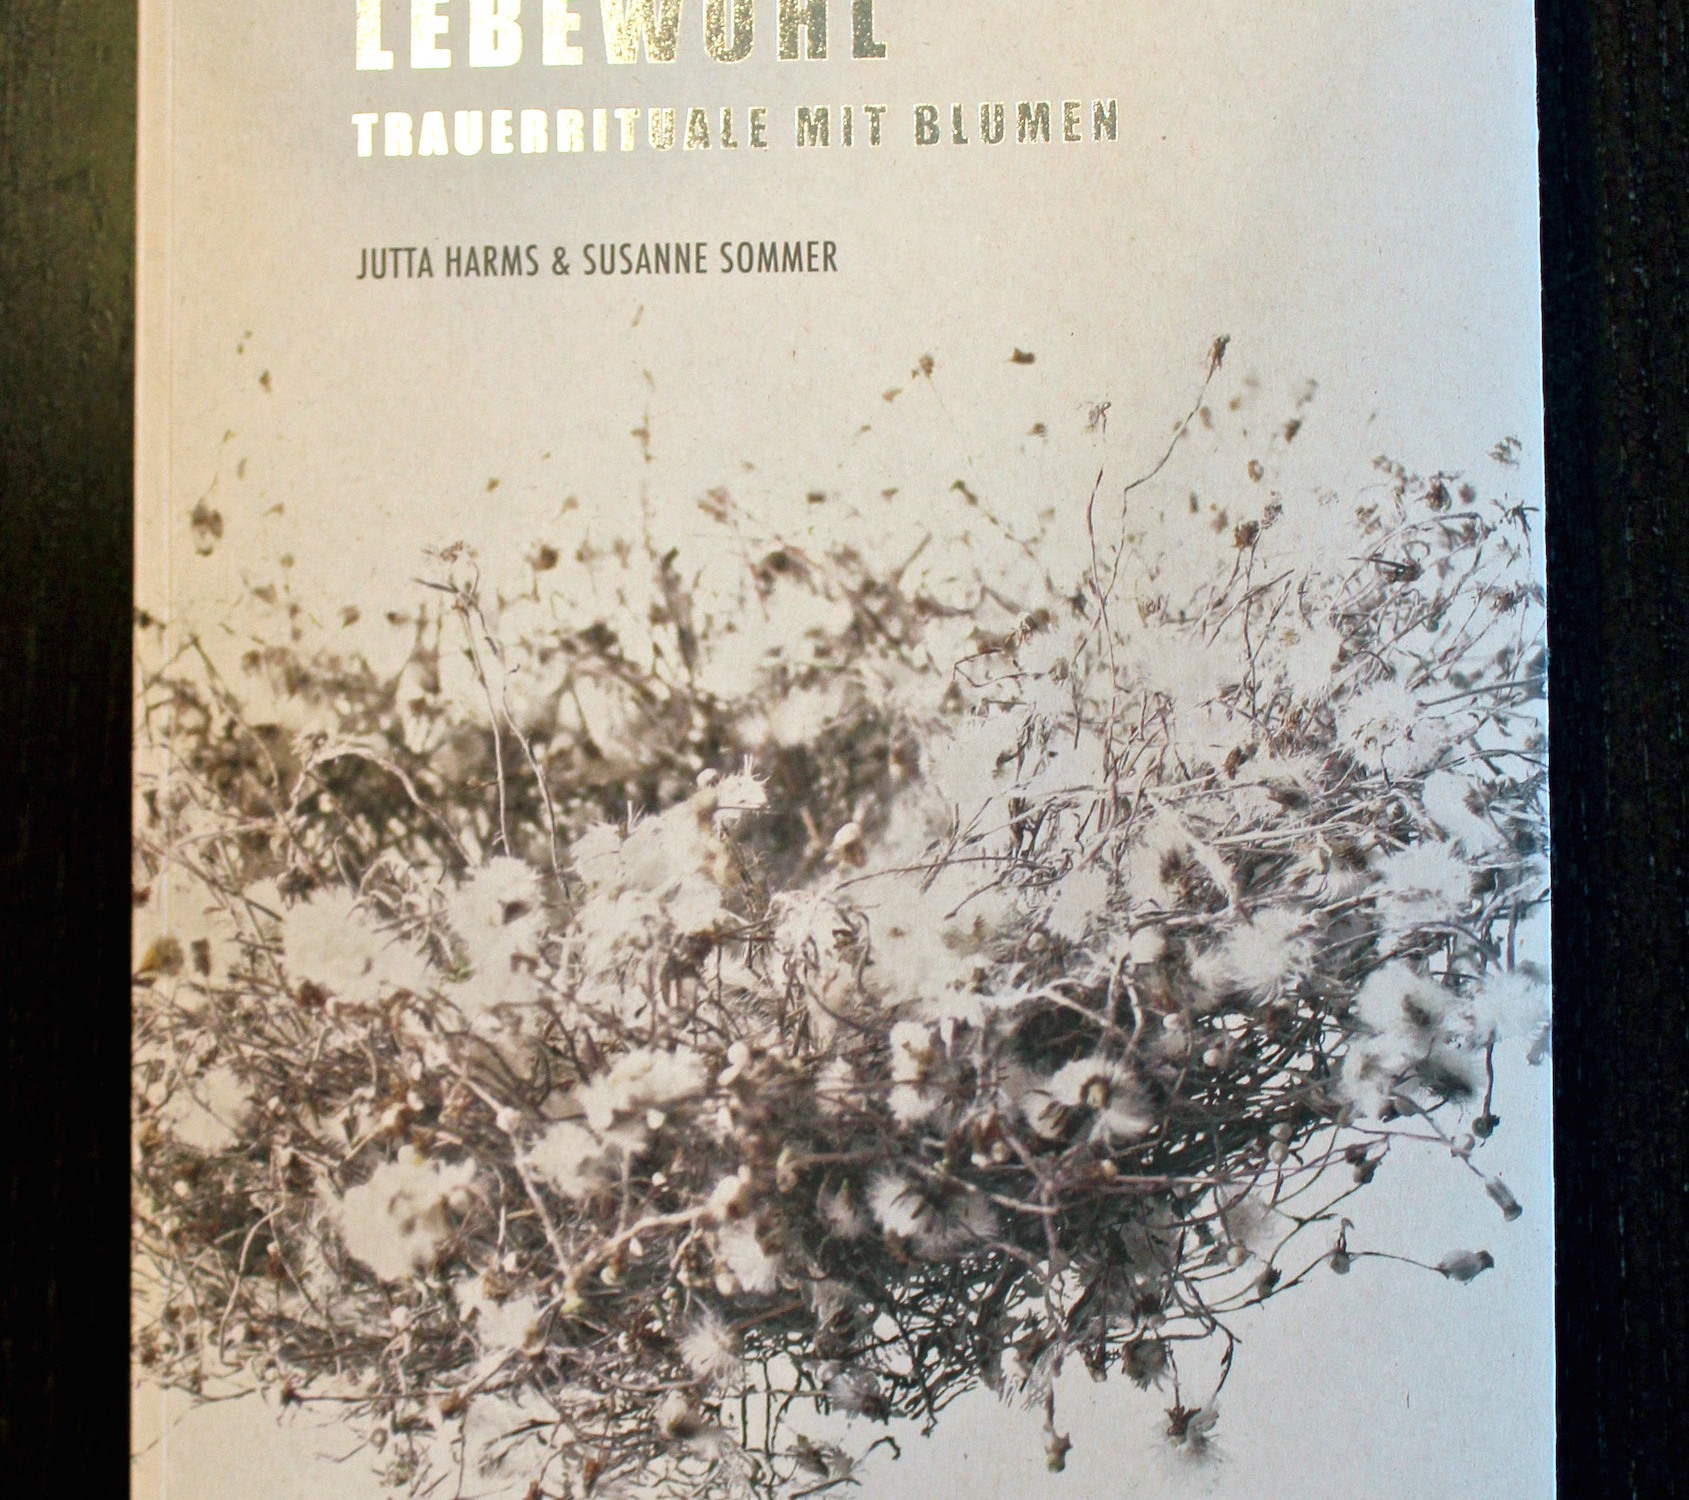 Lebewohl – Trauerrituale mit Blumen Buch Cover